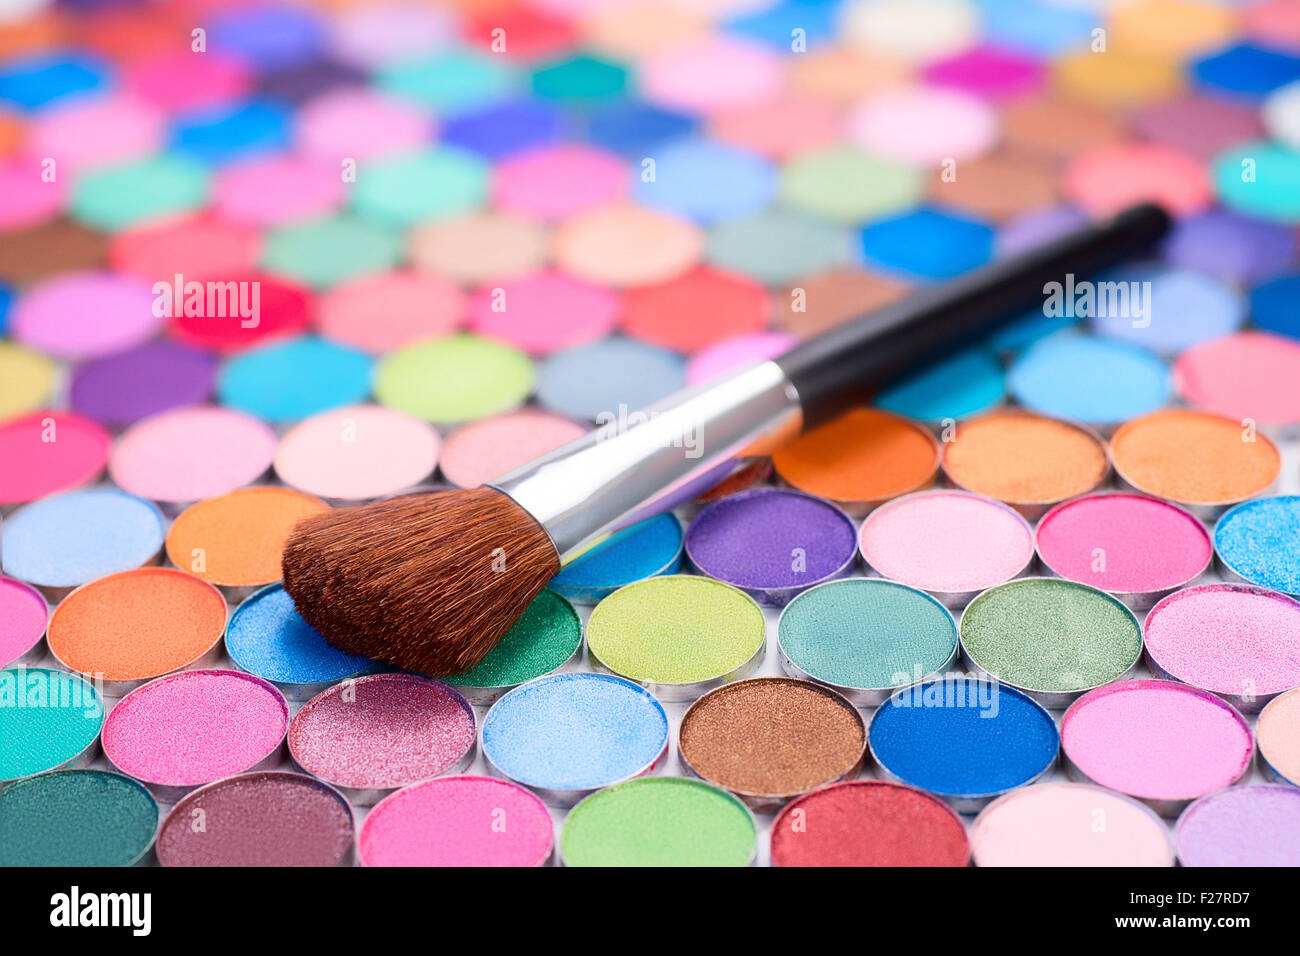 background with make-up brush and many multicolored eye shadows - Stock Image